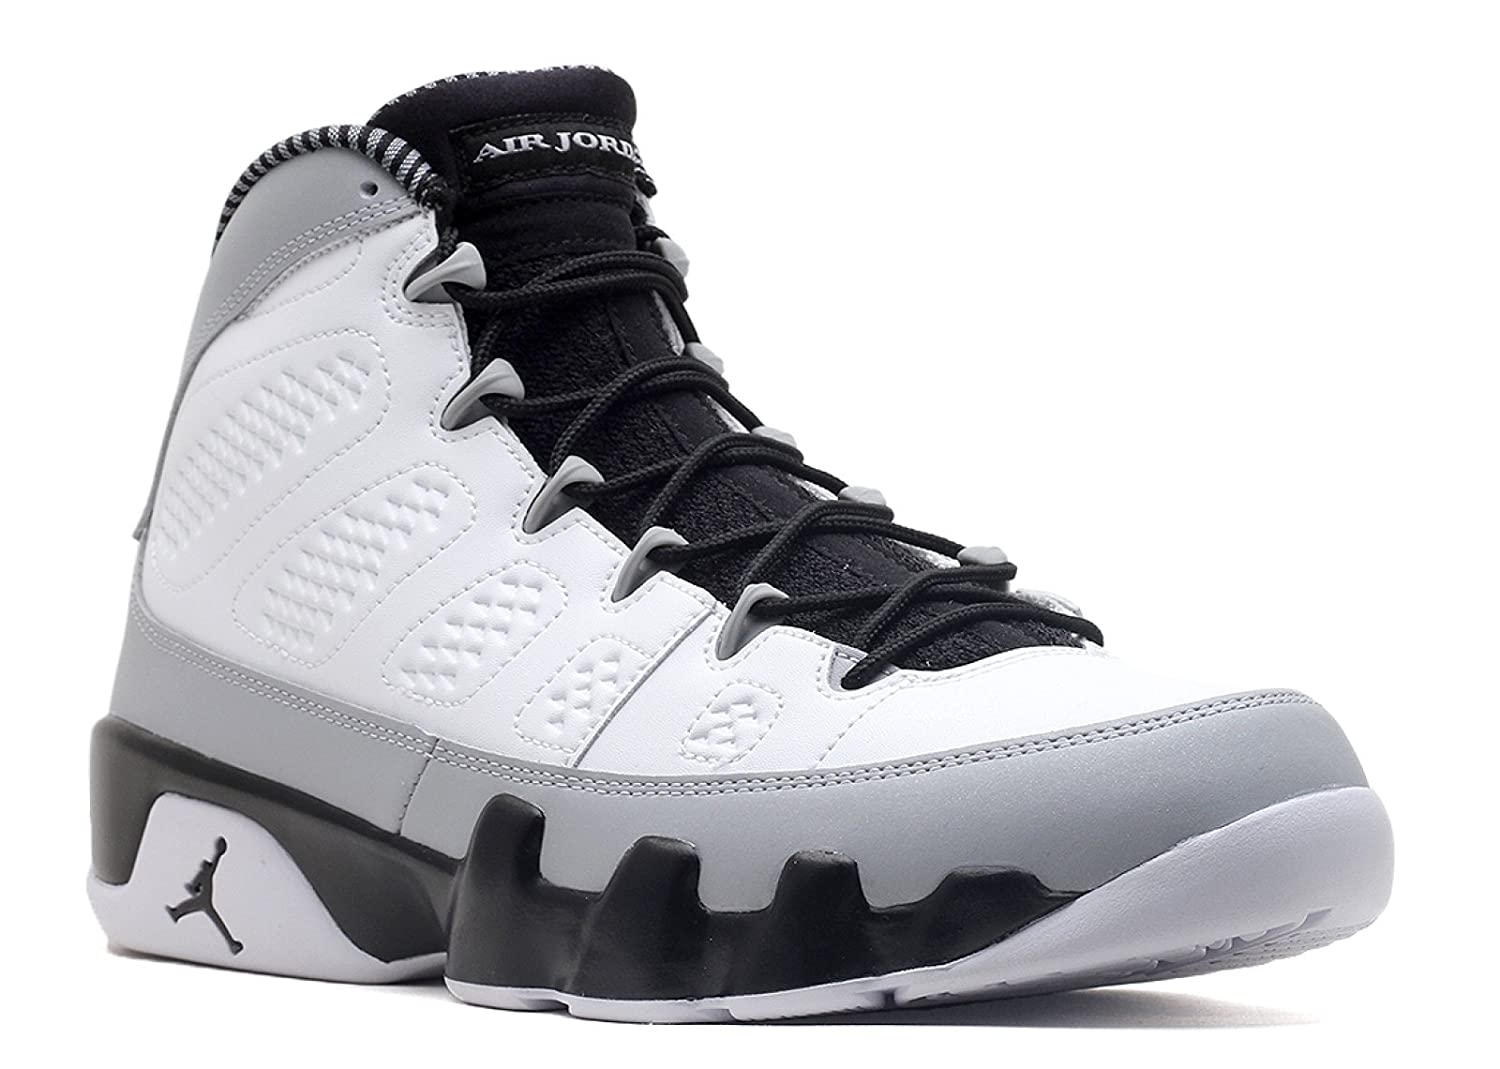 finest selection 1e5d0 b8b61 Jordan Air 9 Retro Birmingham Barons Men's Basketball Shoes  White/Black-Wolf Grey 302370-106